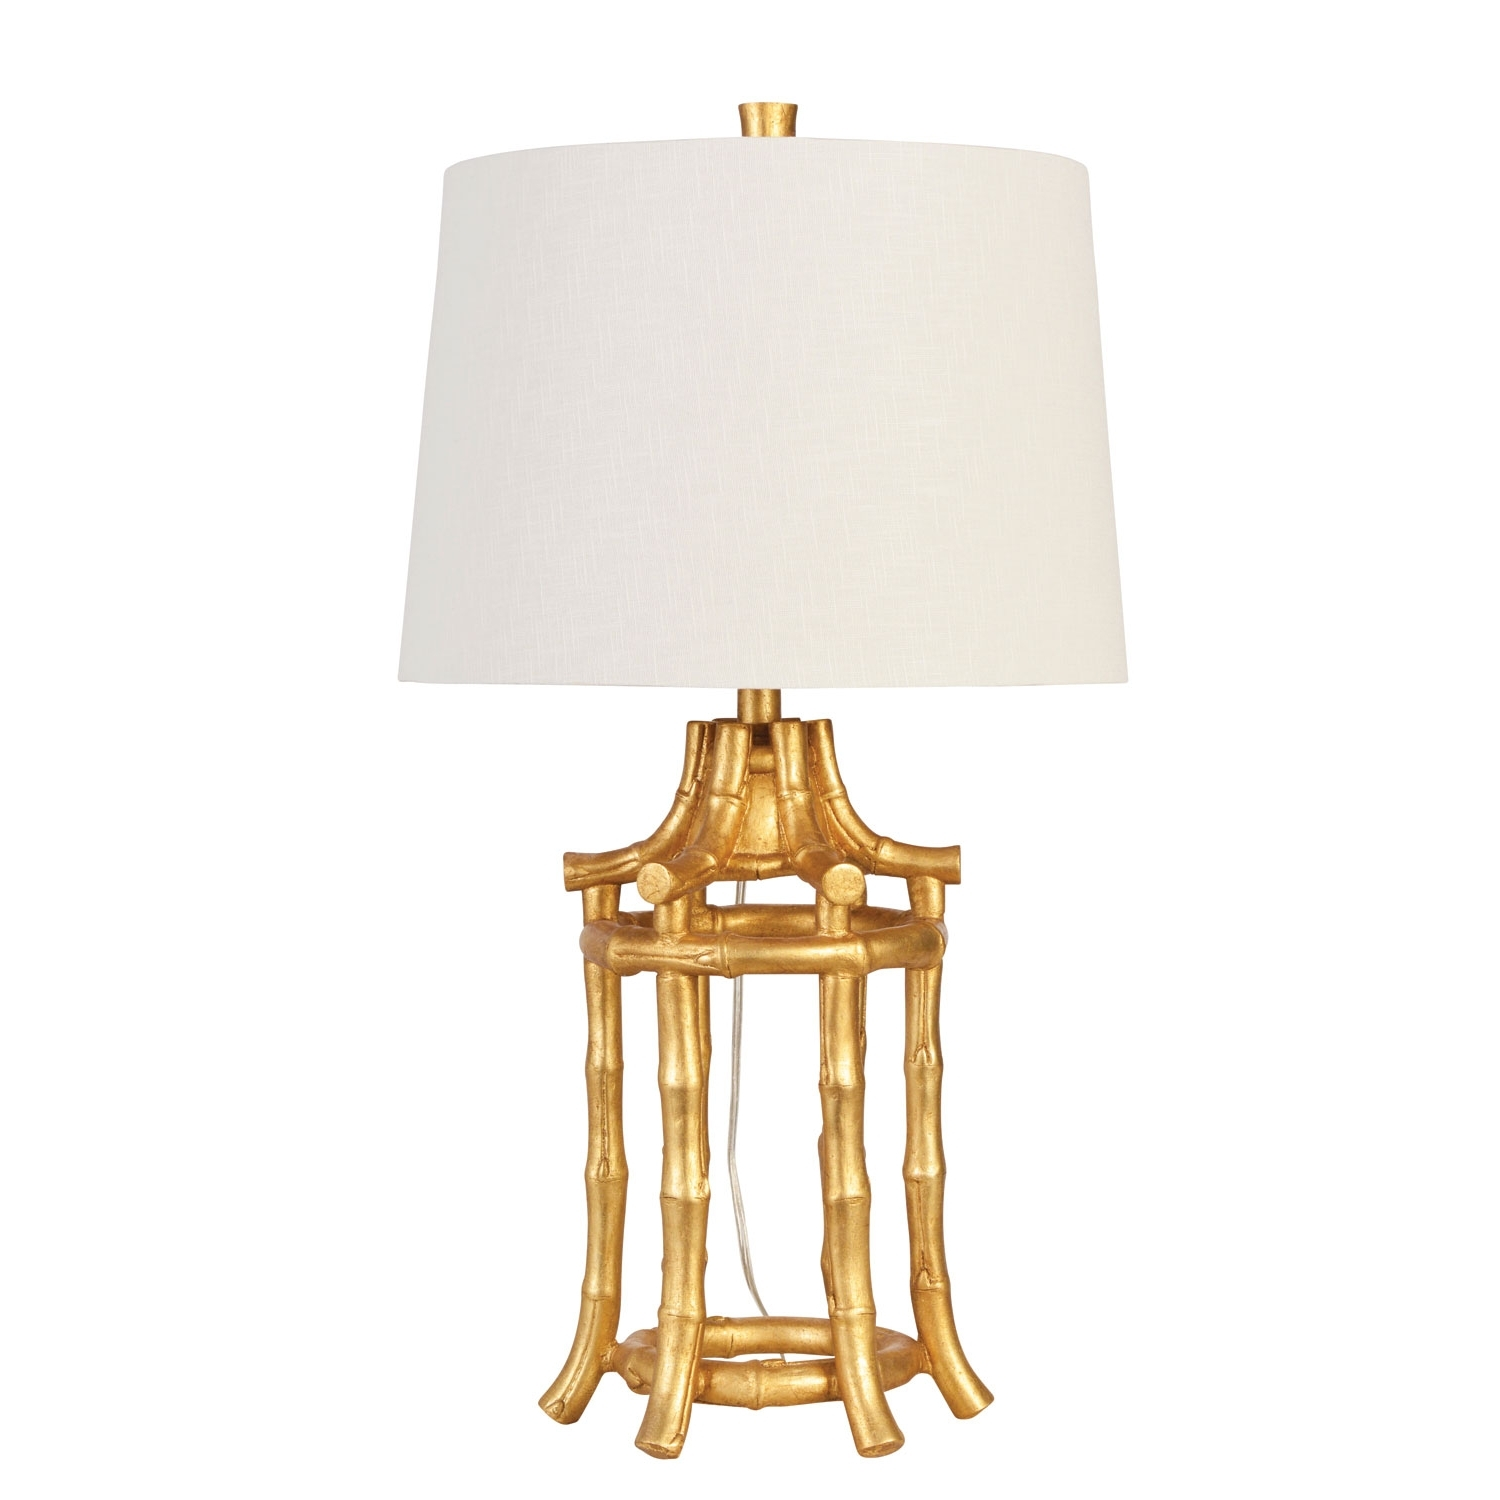 Lamp : Gold Table Lamp Base Lamps Living Room Shades For With Metal With Famous Gold Living Room Table Lamps (View 8 of 15)